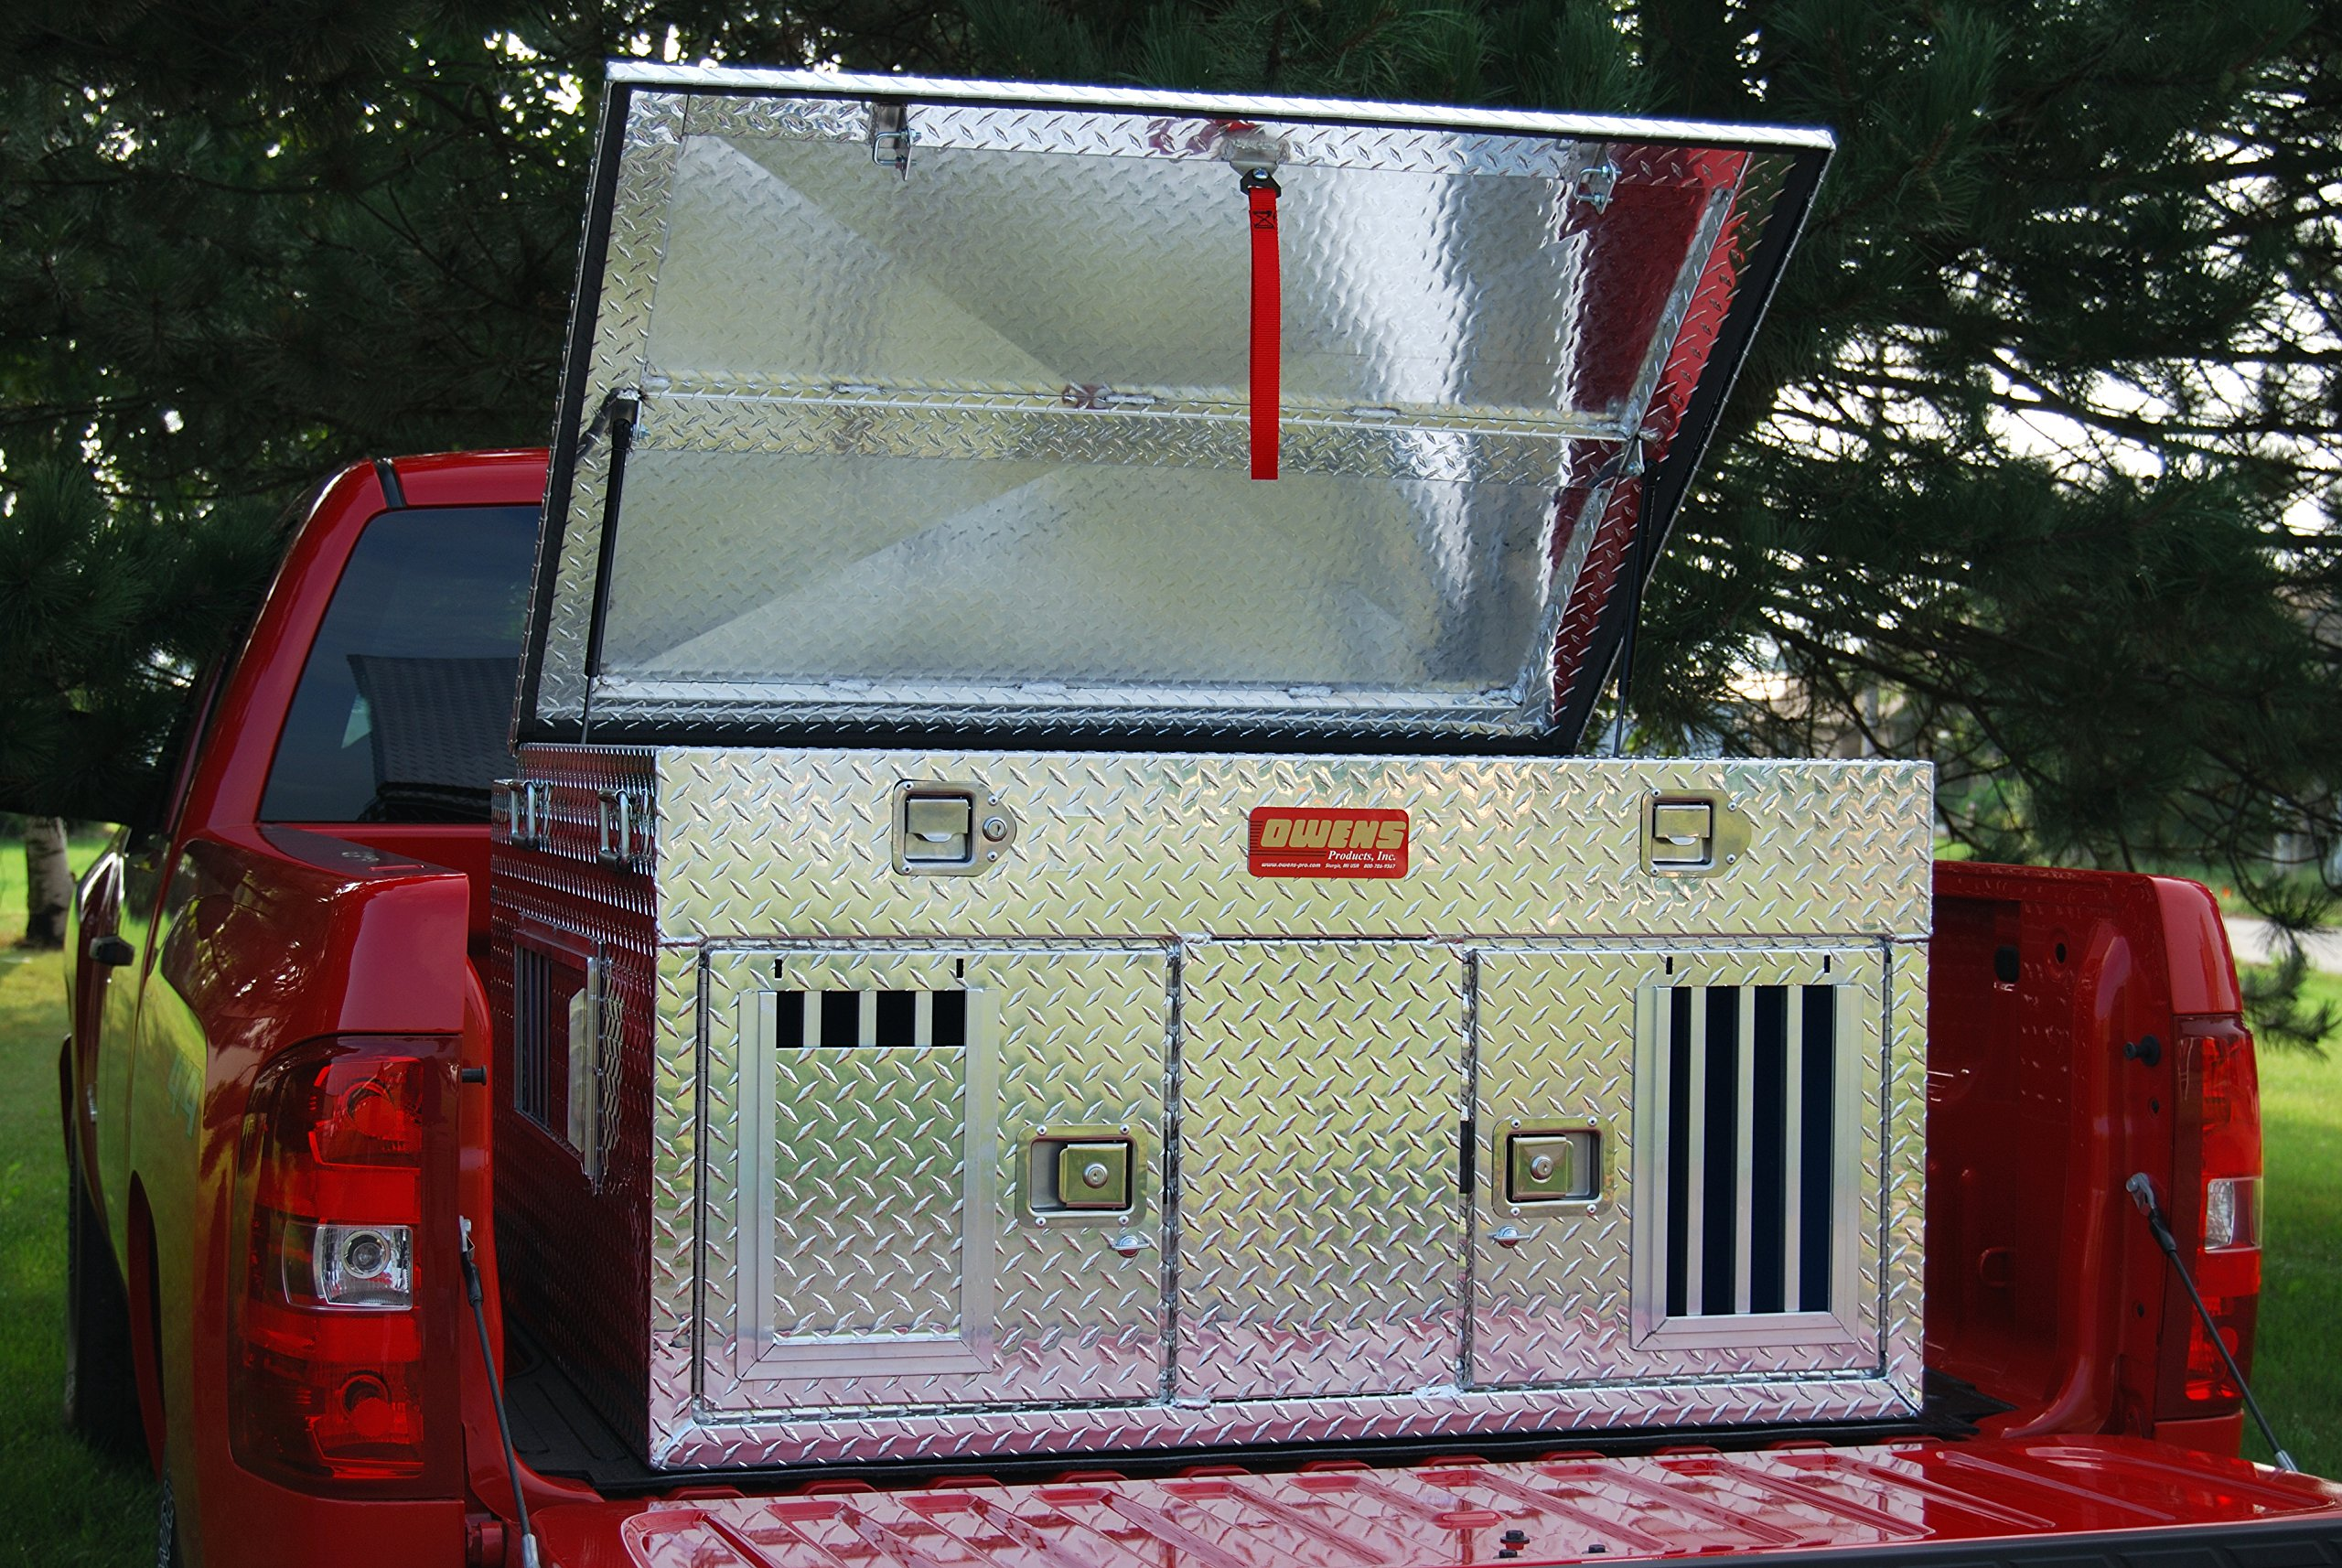 Owens Products, Model 55006, Dog Box for Hunting and Travel ~ Hunter Series Double Compartment Diamond Plate Aluminum Dog Crate, with Top Storage